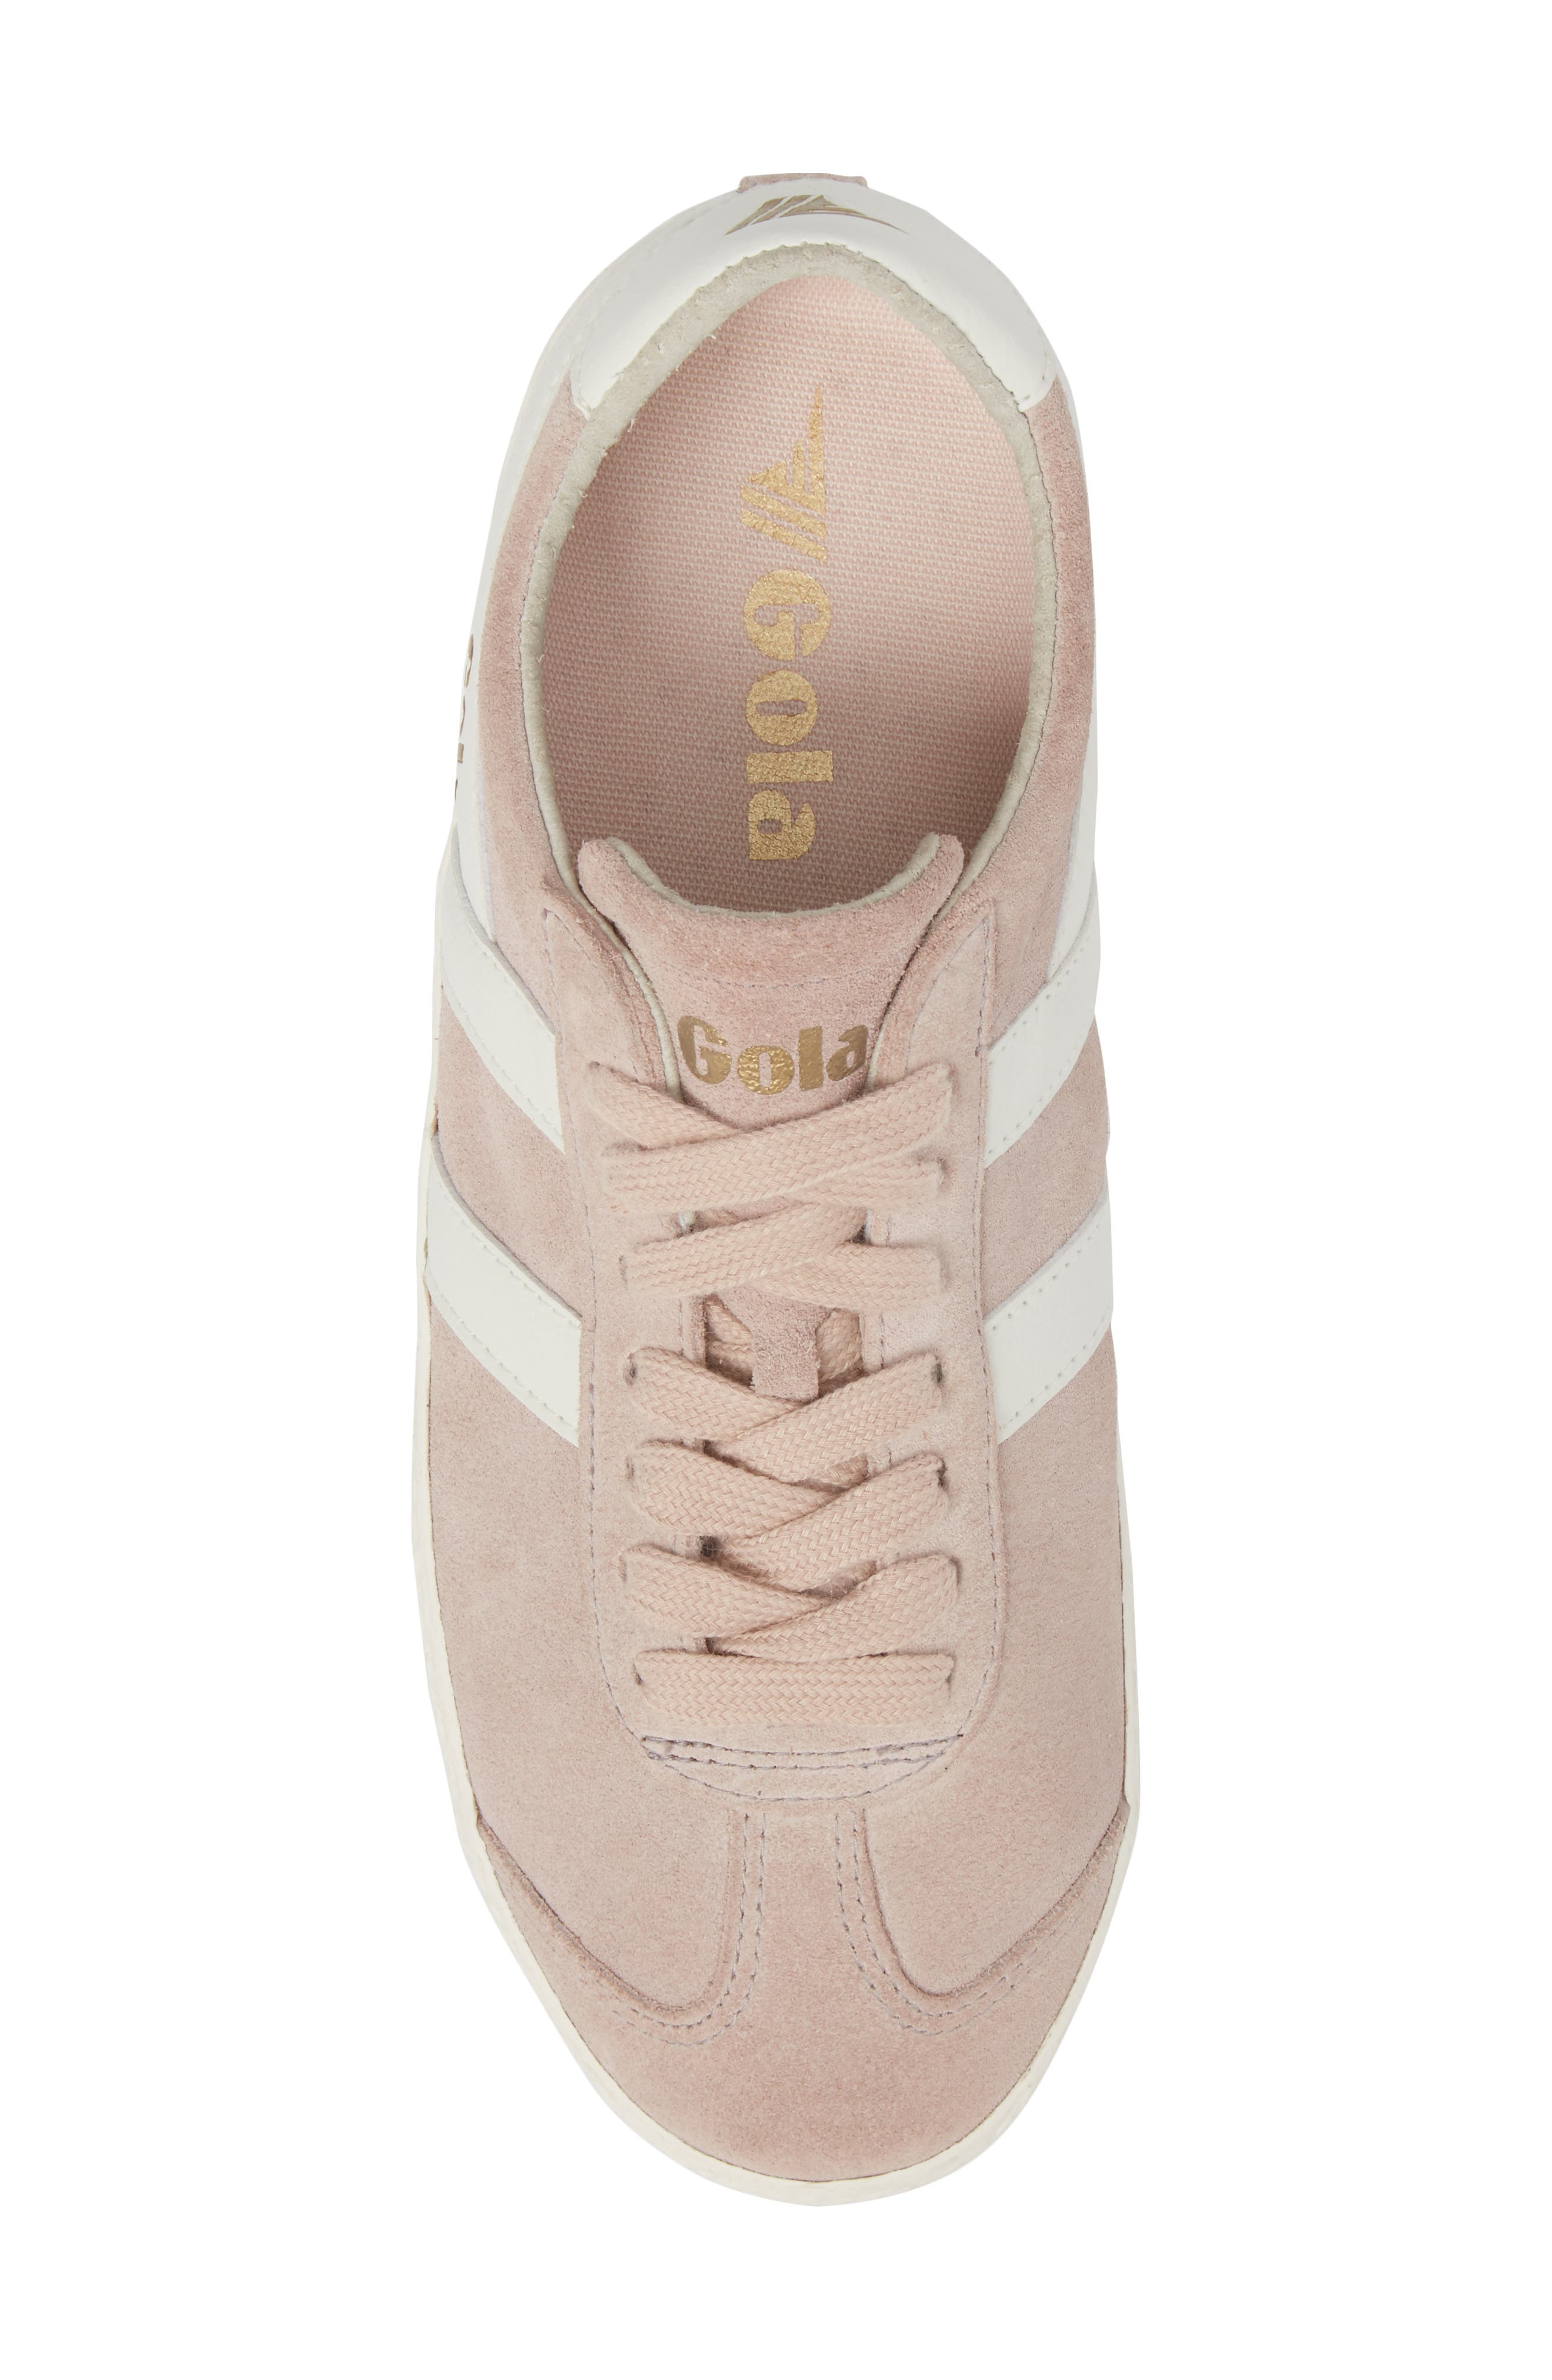 Specialist Low Top Sneaker,                             Alternate thumbnail 5, color,                             BLOSSOM/ OFF WHITE